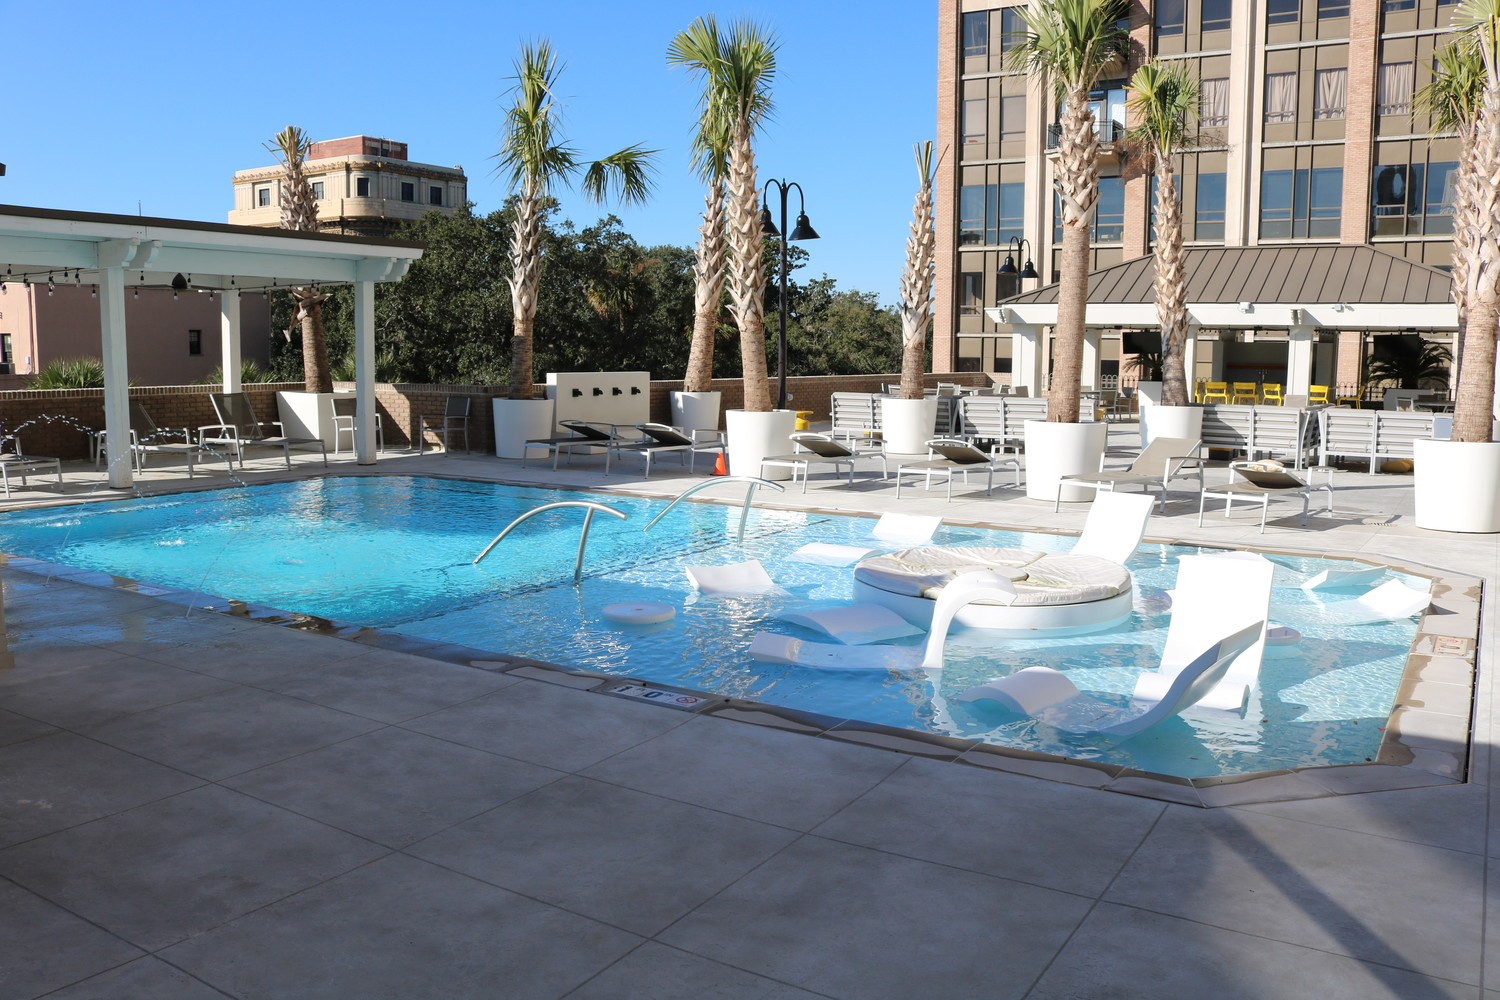 The DeSoto features a rooftop pool with fire pits, fountains and a cabana bar.